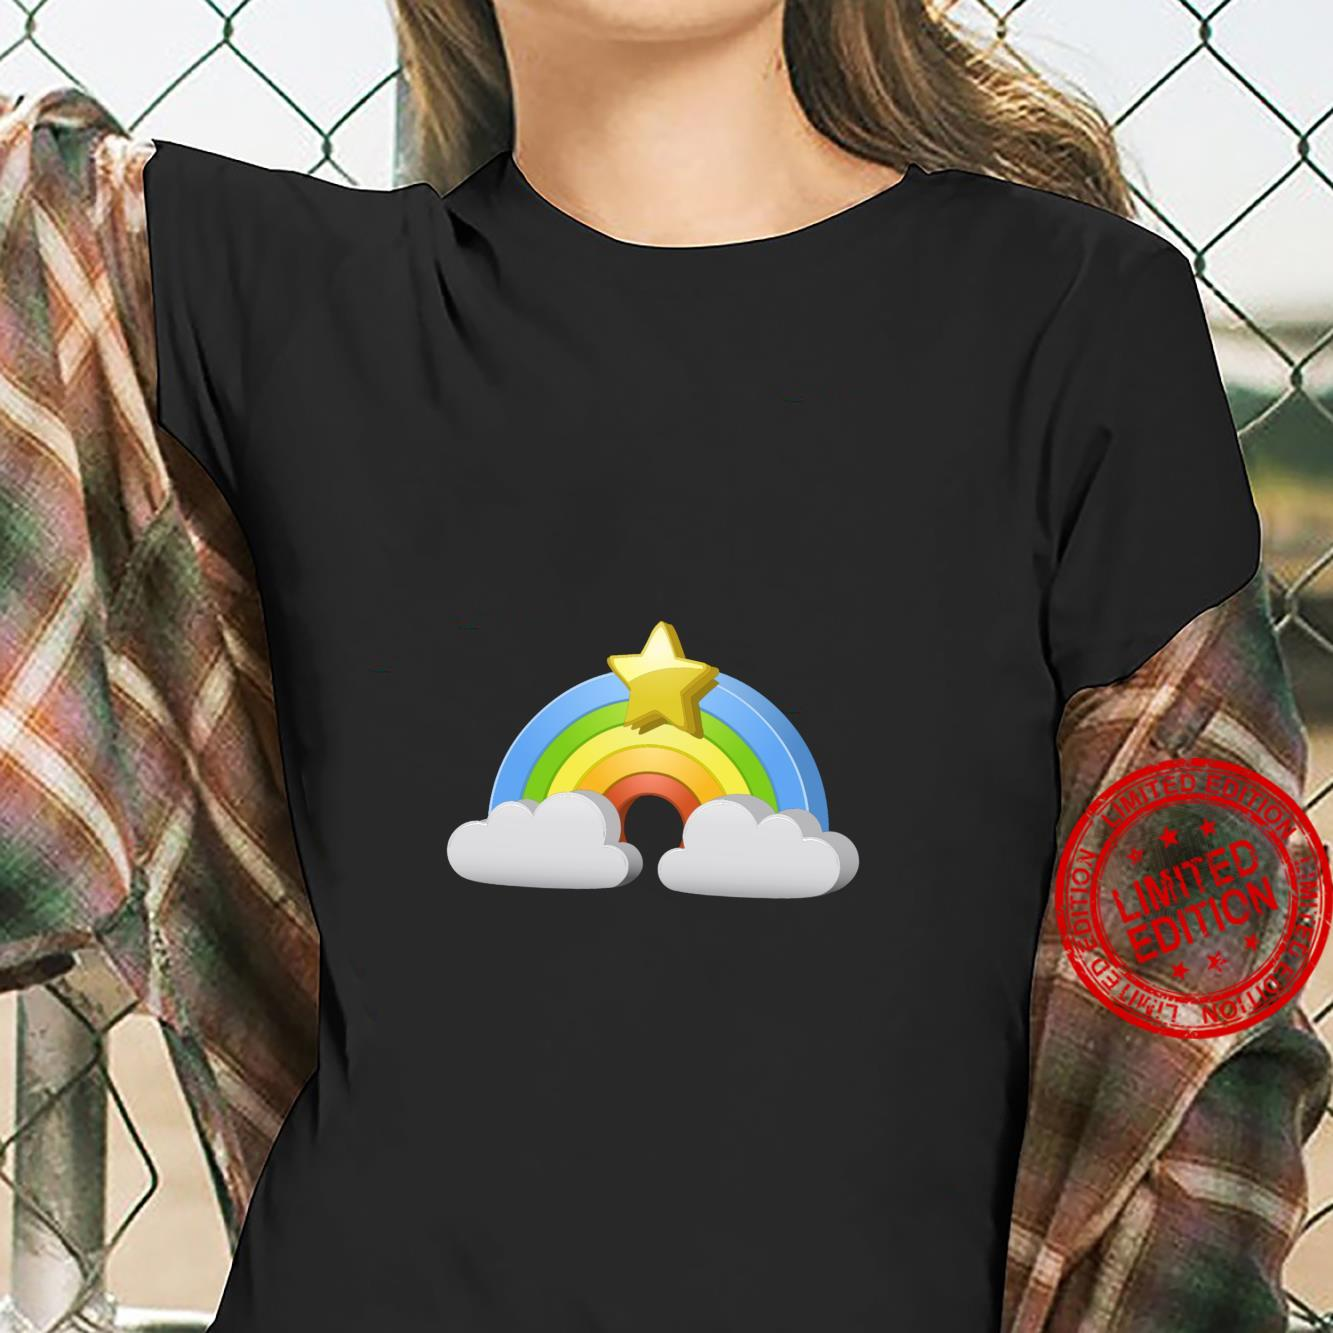 Extravagant Rainbow with a Star on Top Shirt ladies tee